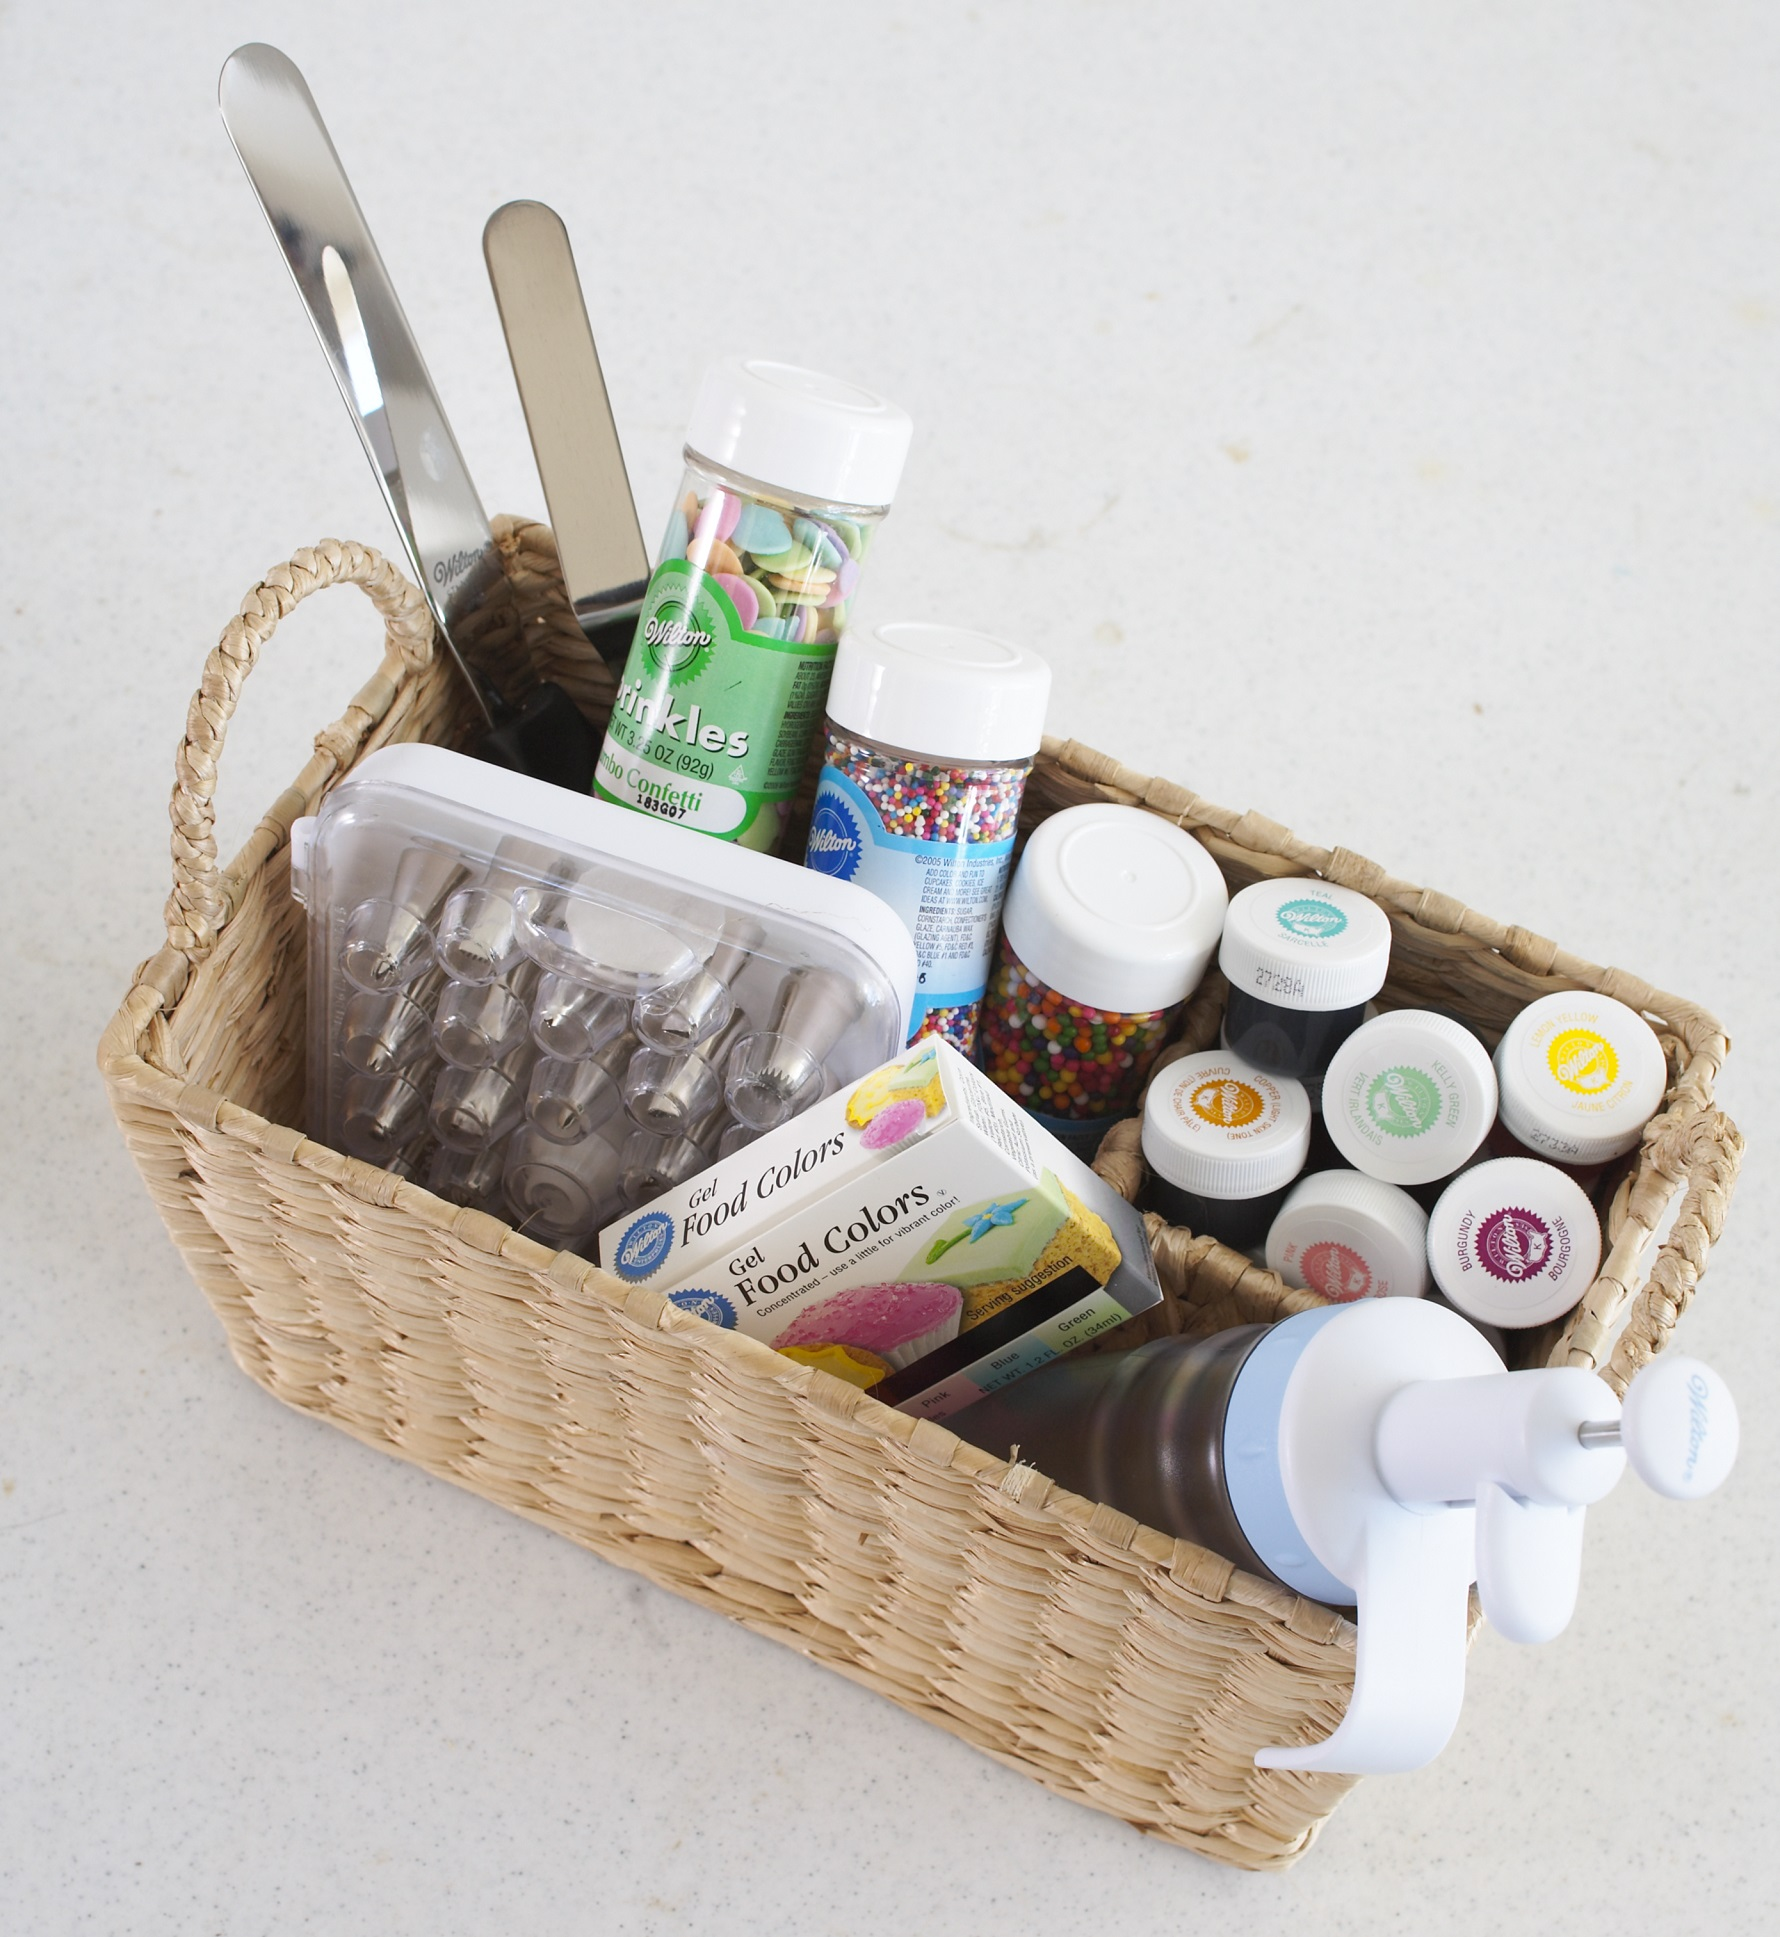 Cake Decorating Supplies in Organized Basket